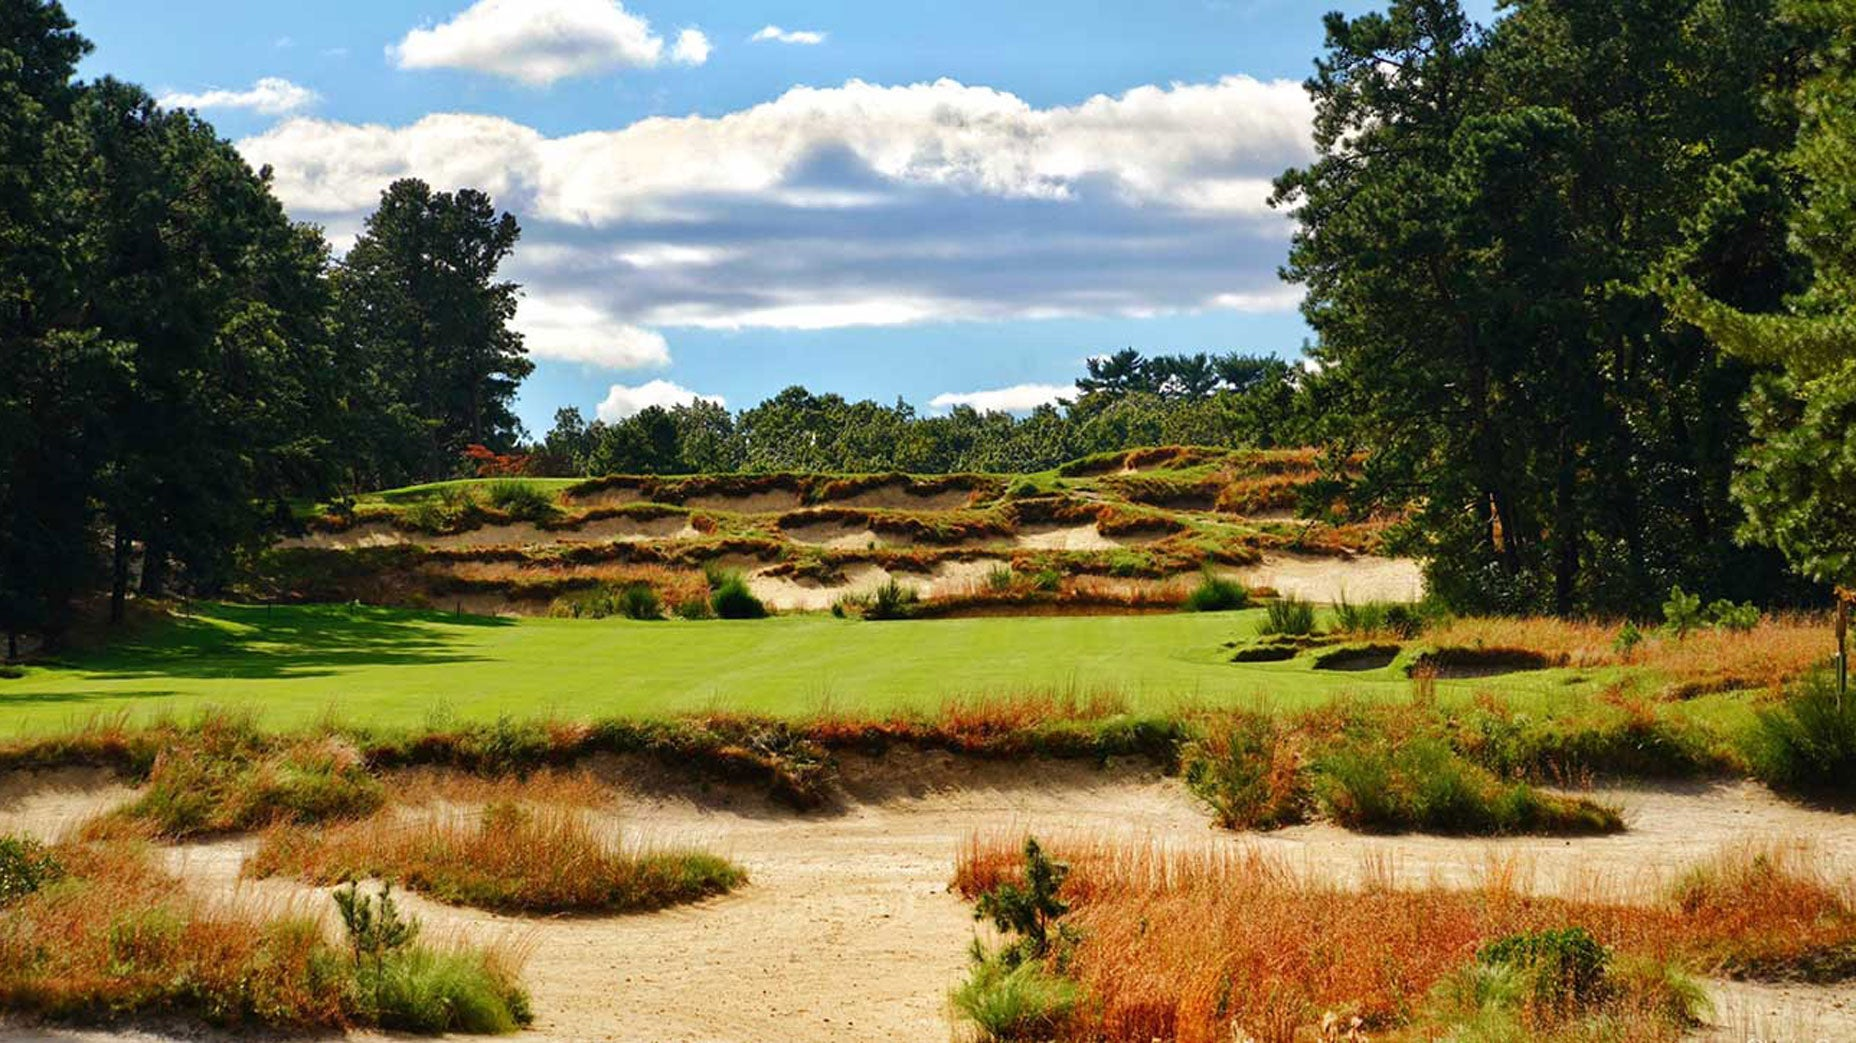 Best golf courses in New Jersey, according to GOLF ...